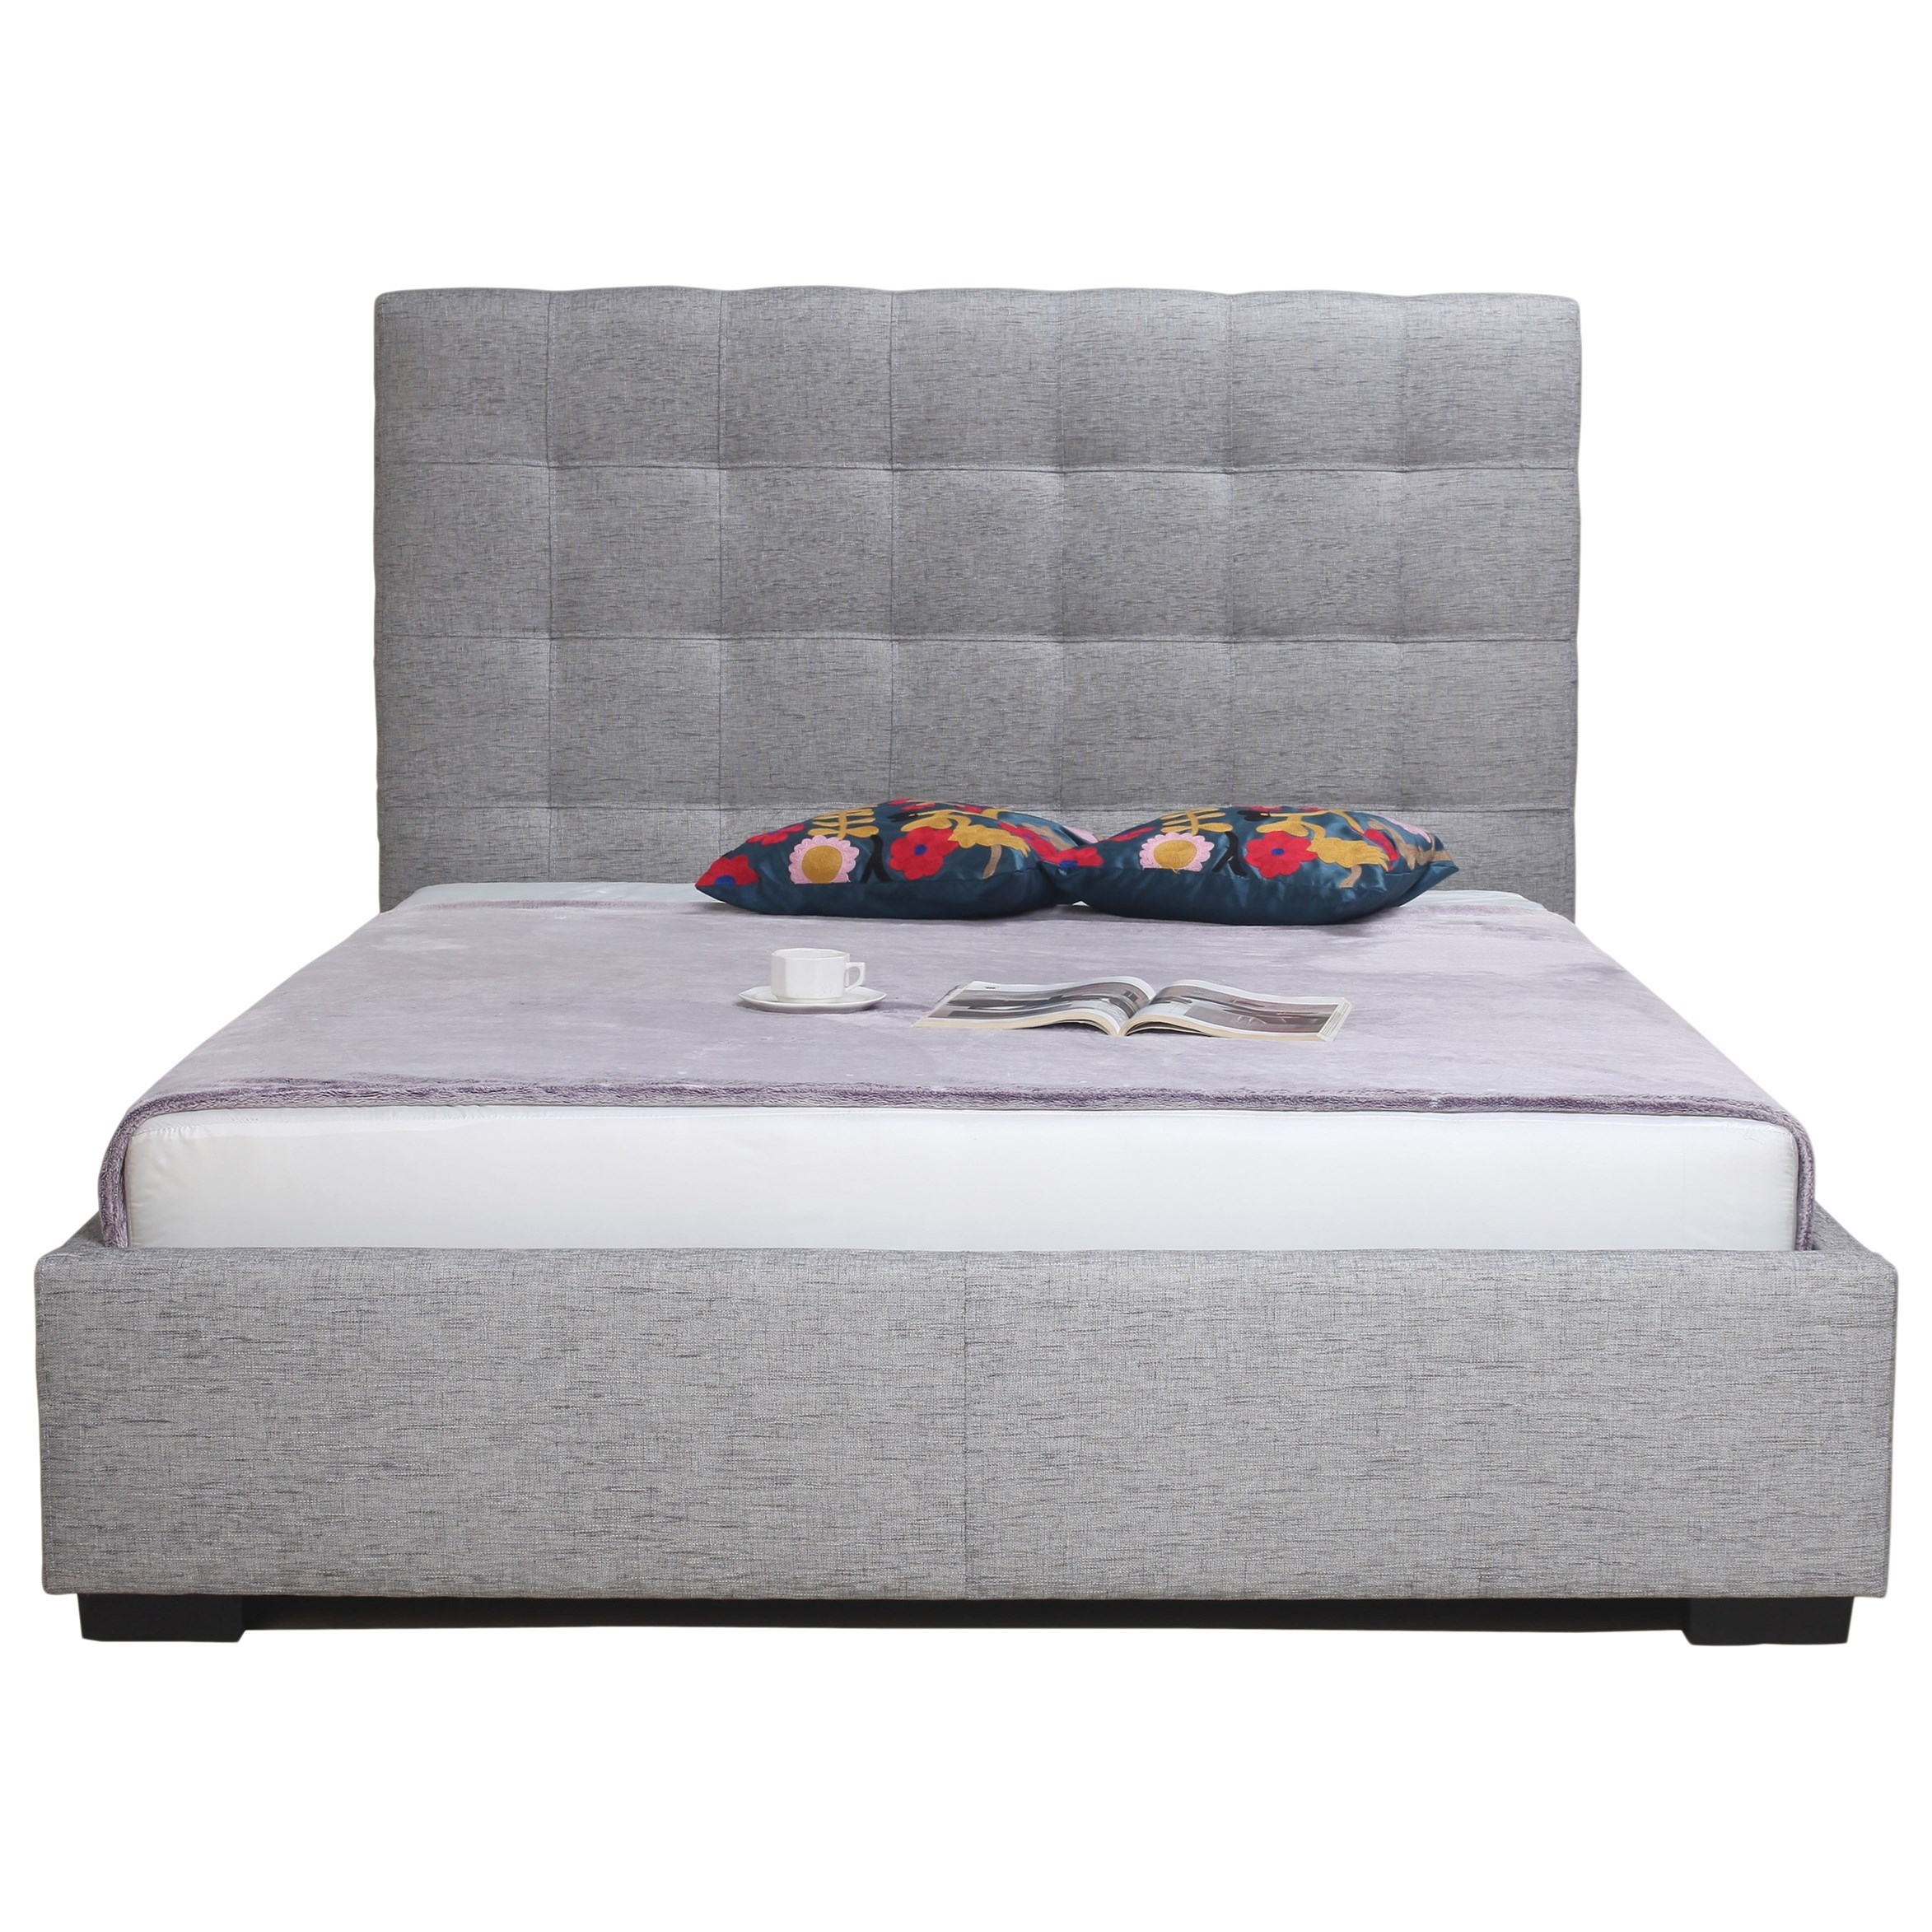 Moe's Home Collection Belle  Storage Bed Queen Light Grey Fabric  - Item Number: RN-1000-29